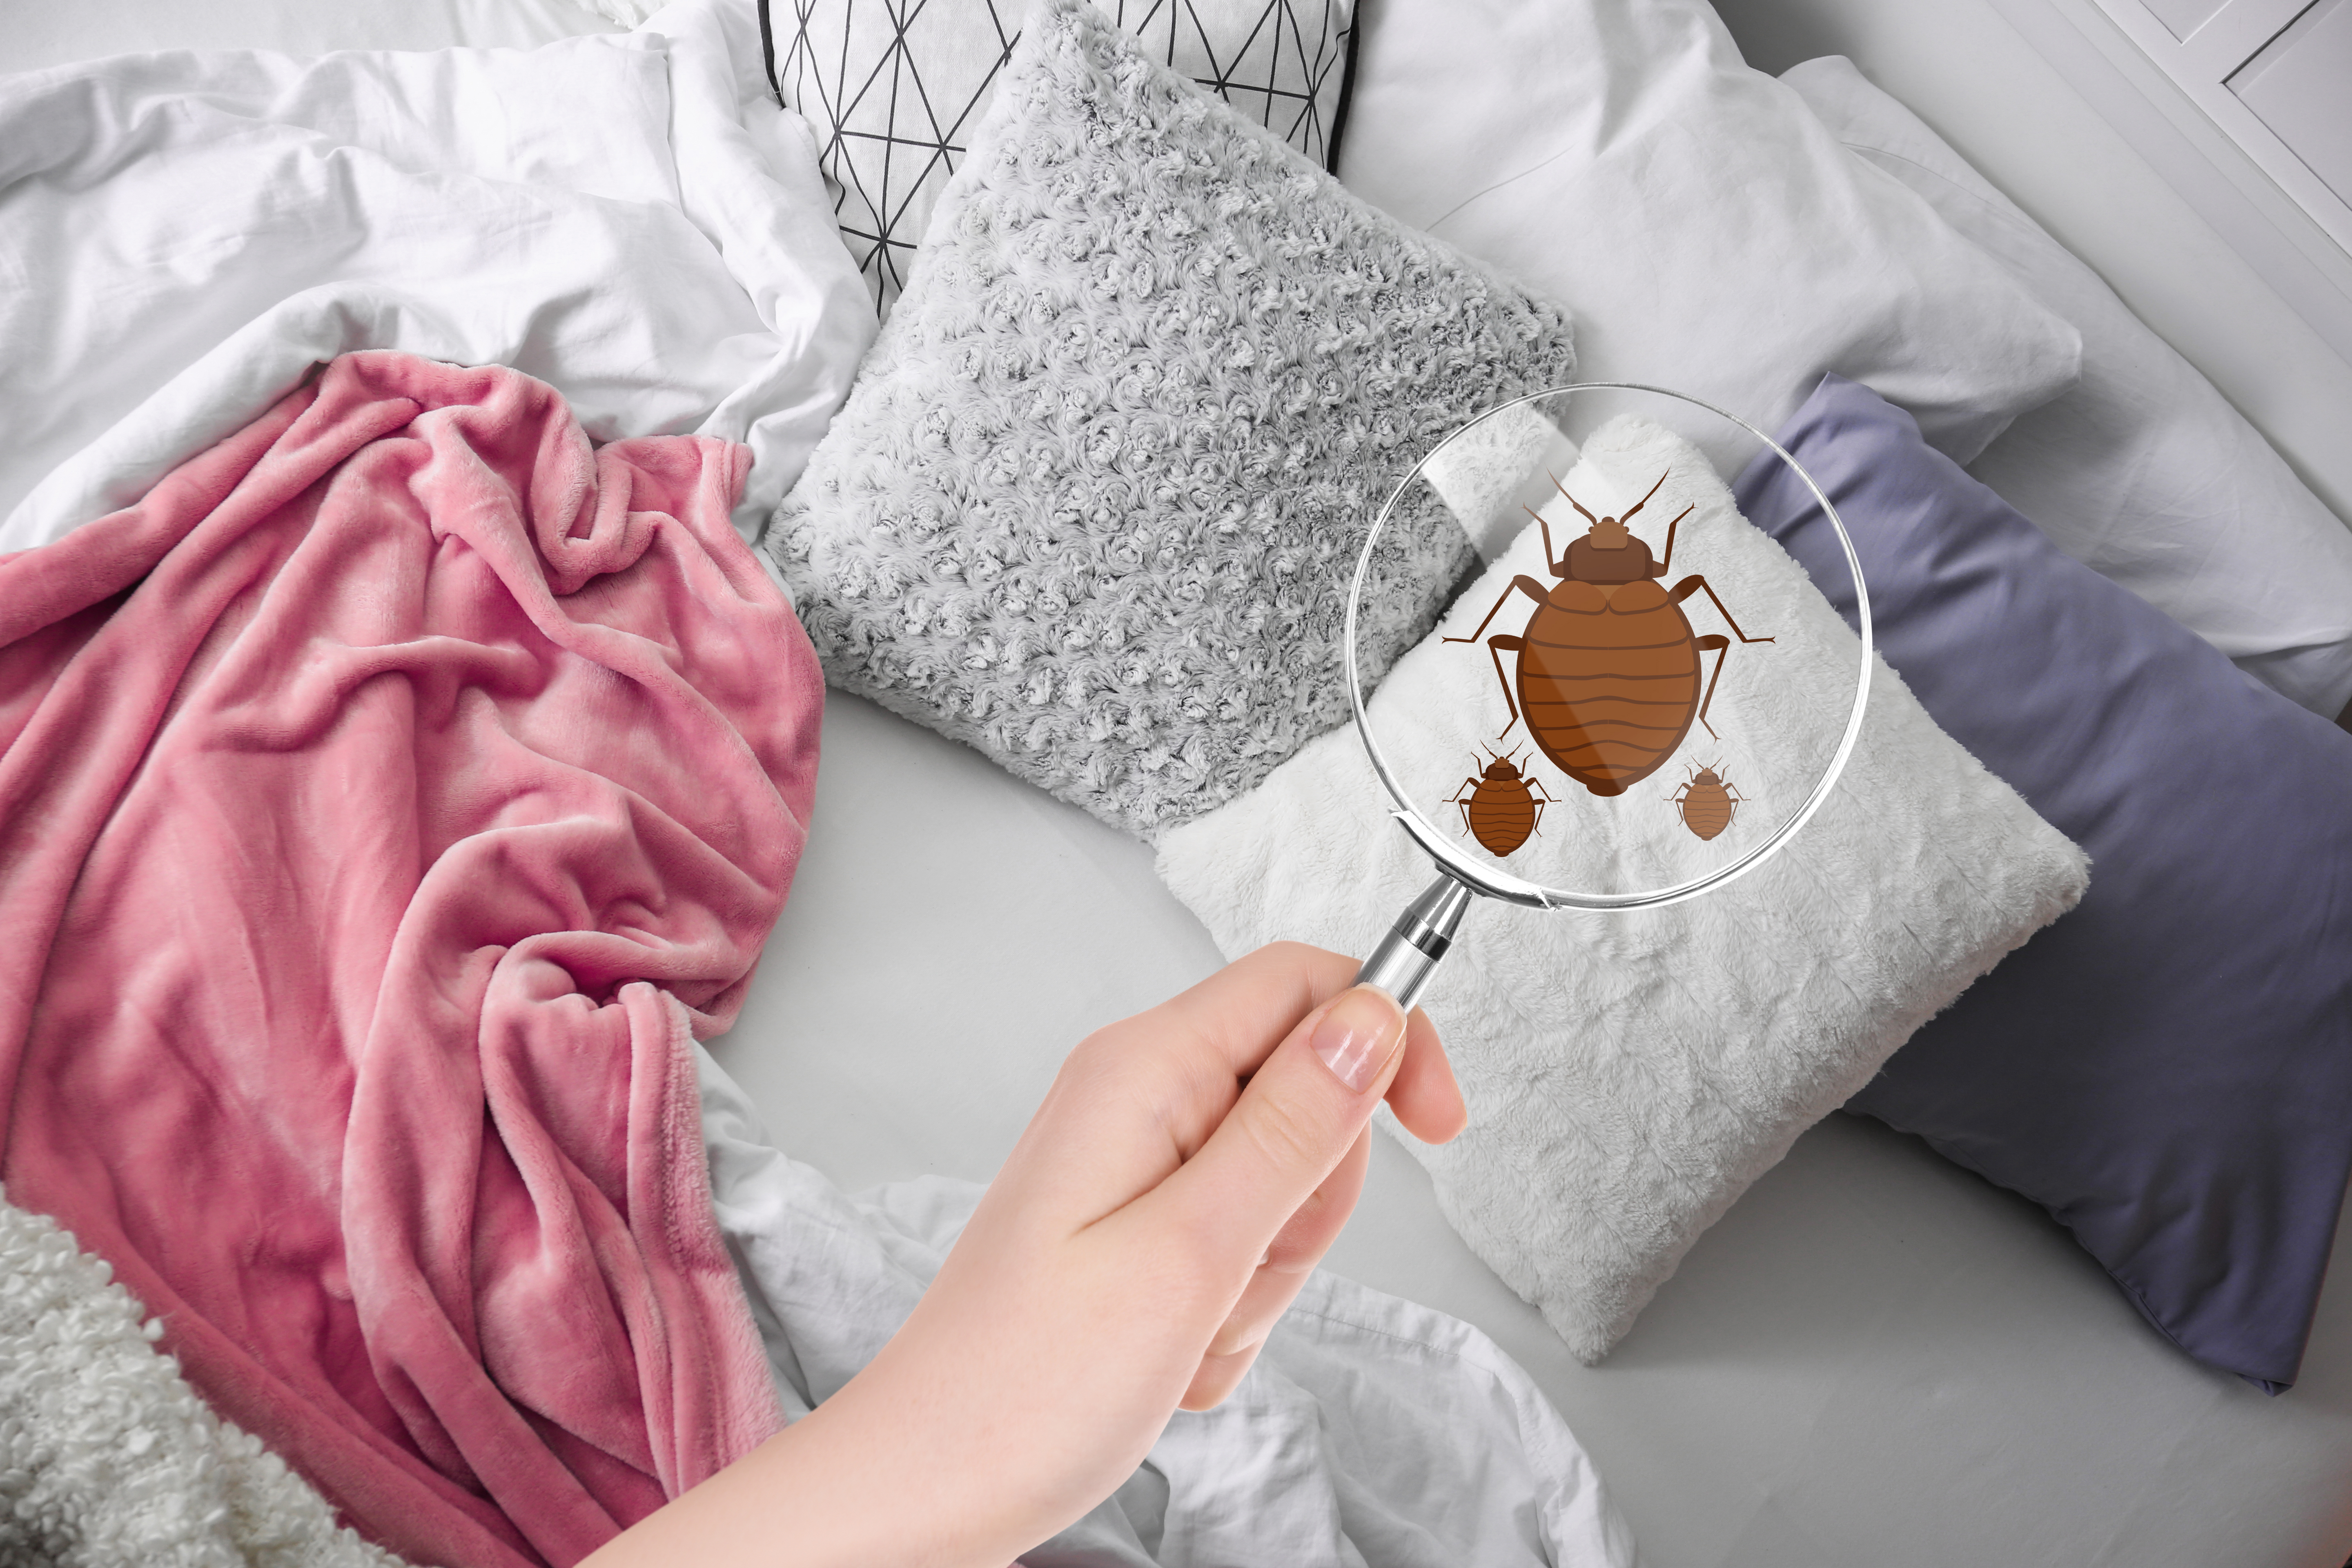 Bed bug seen using a magnifying glass